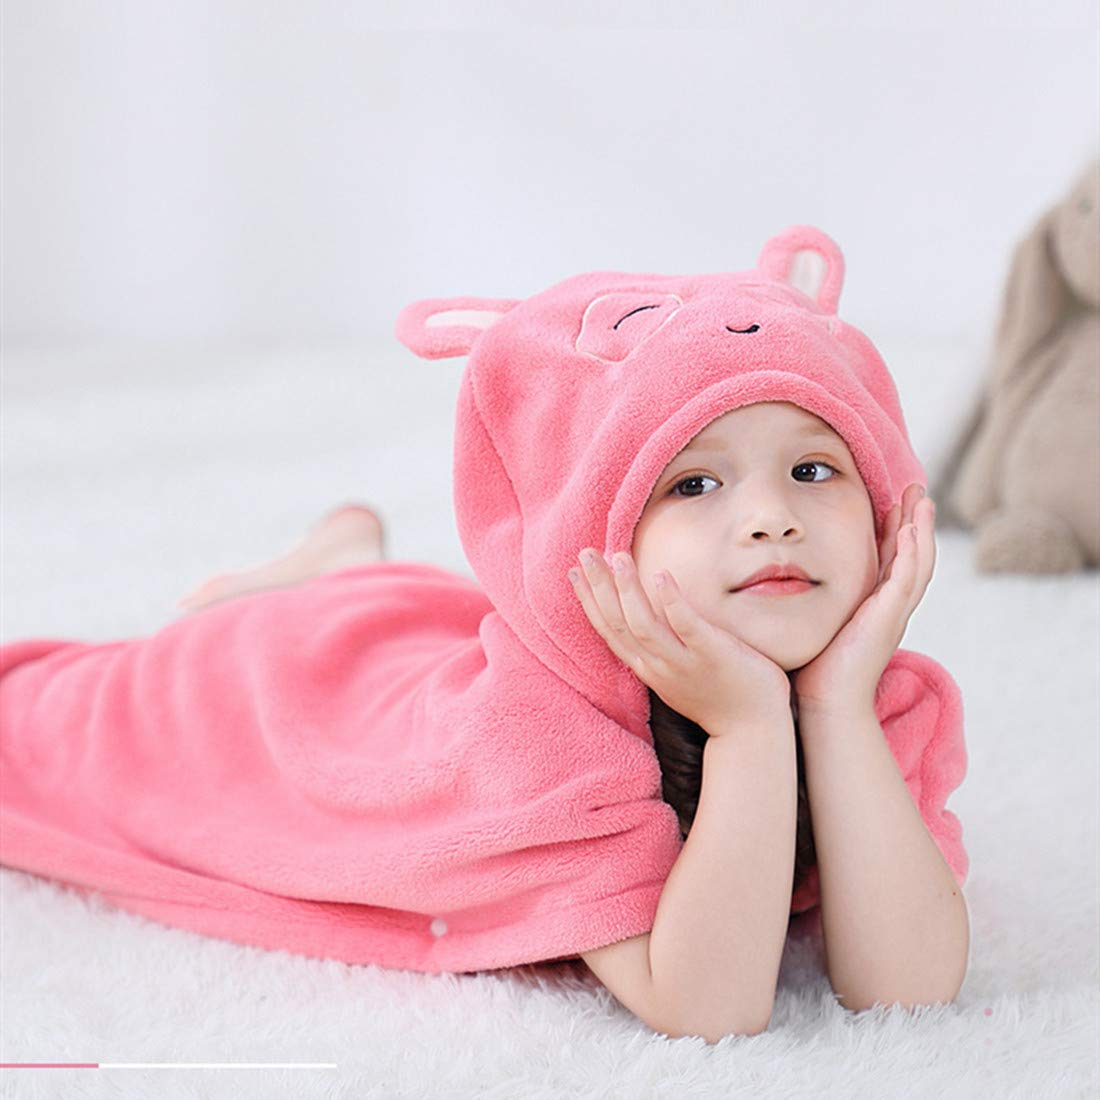 After Bath Kids Hooded Towel for Toddler Fluffy Baby Towel Wrap with Cute Animal Face Hood Bee